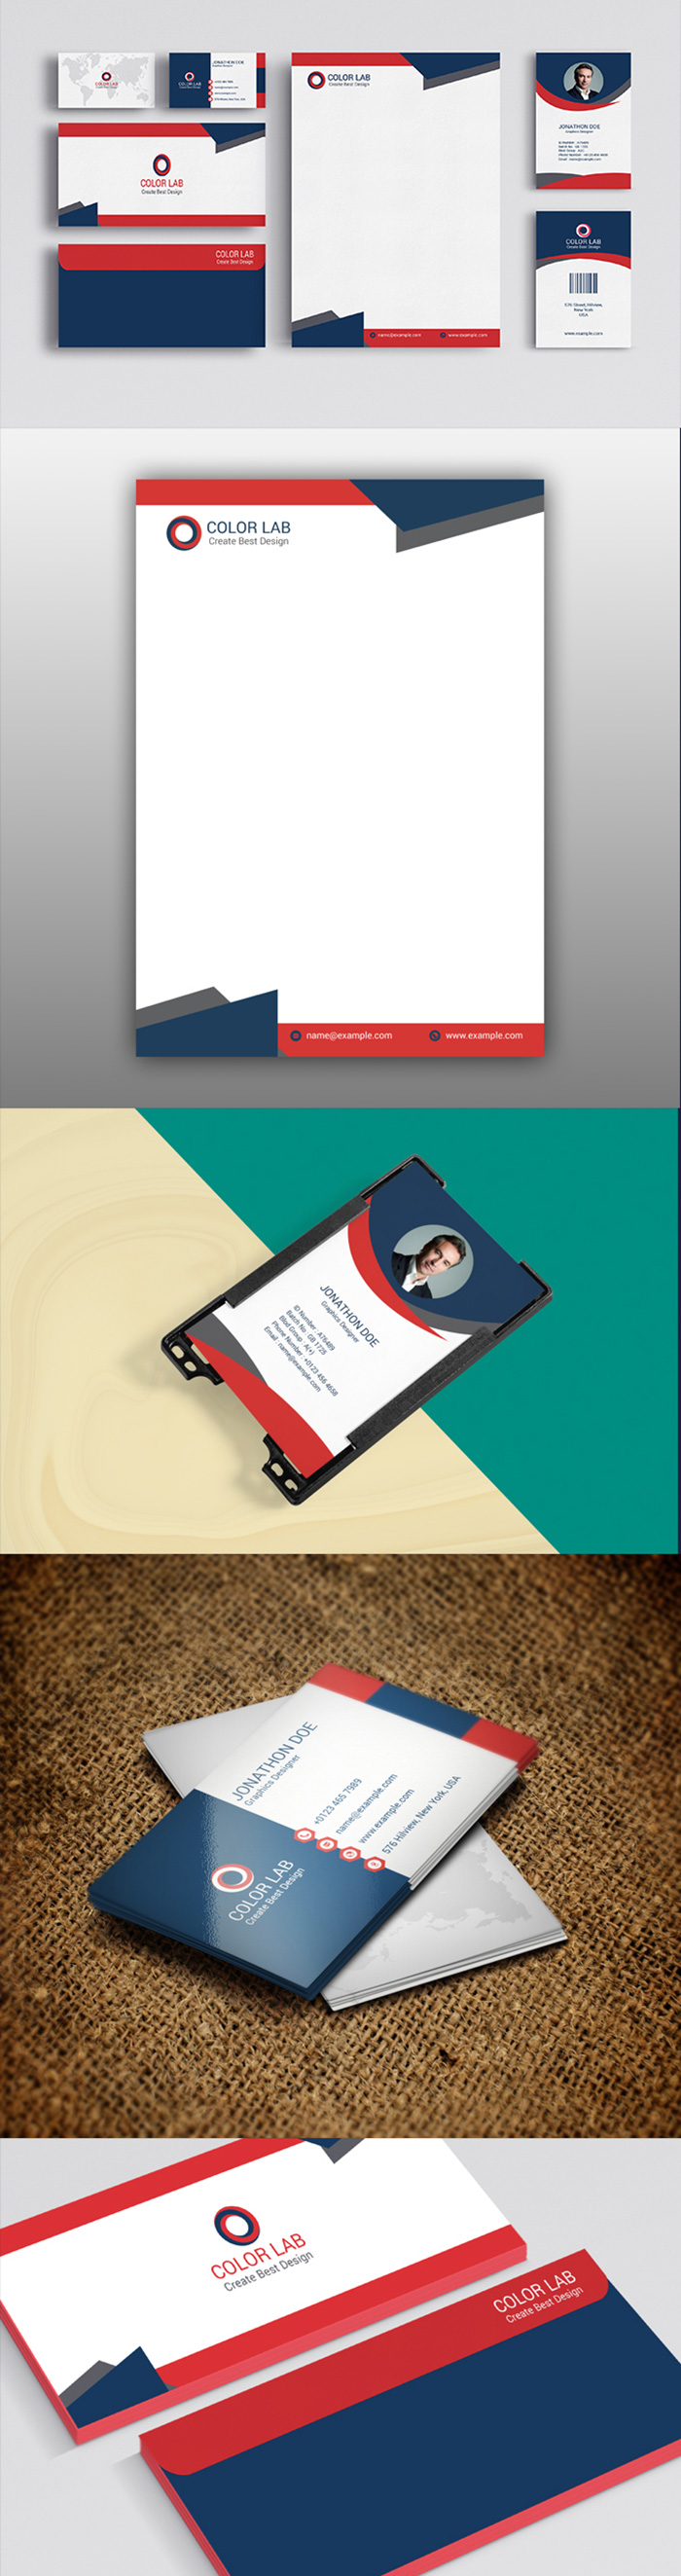 50 Corporate Identities with Extended License - 1